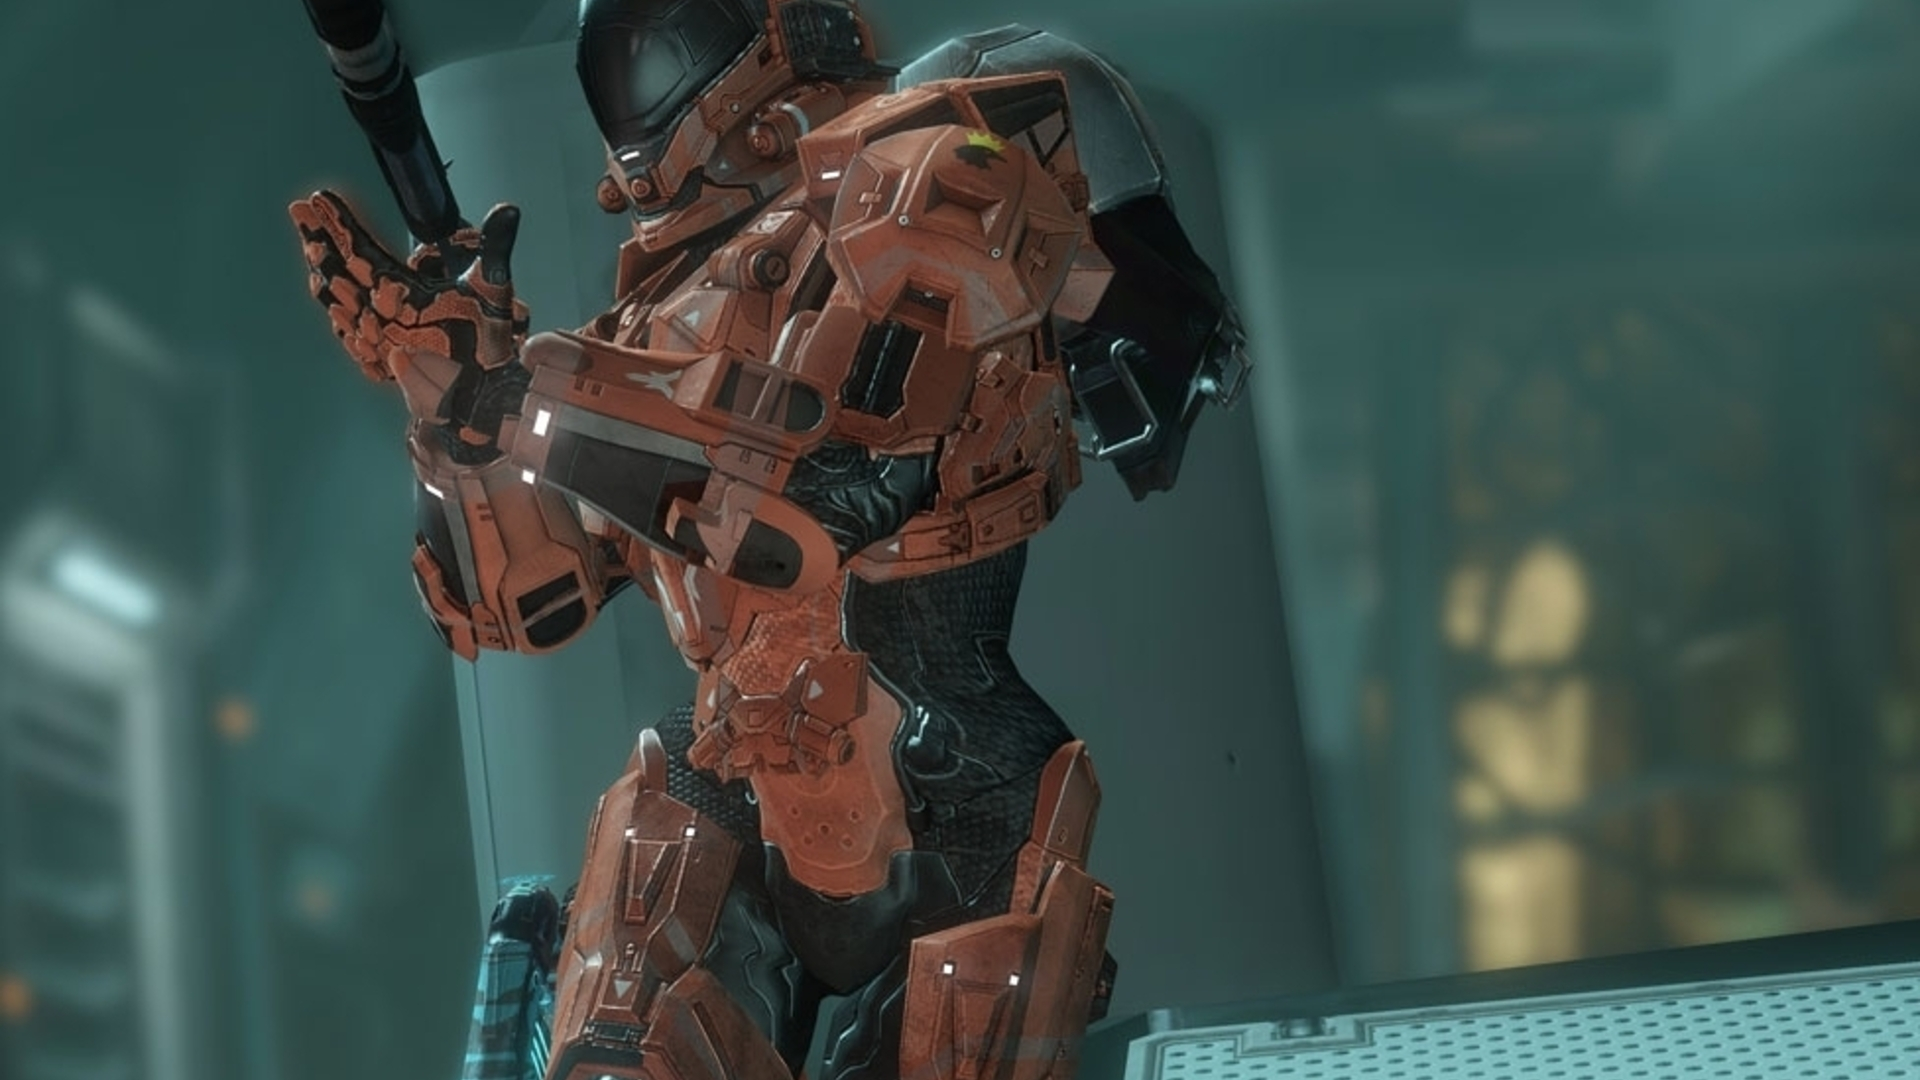 343 Industries announces Halo 4 global championship